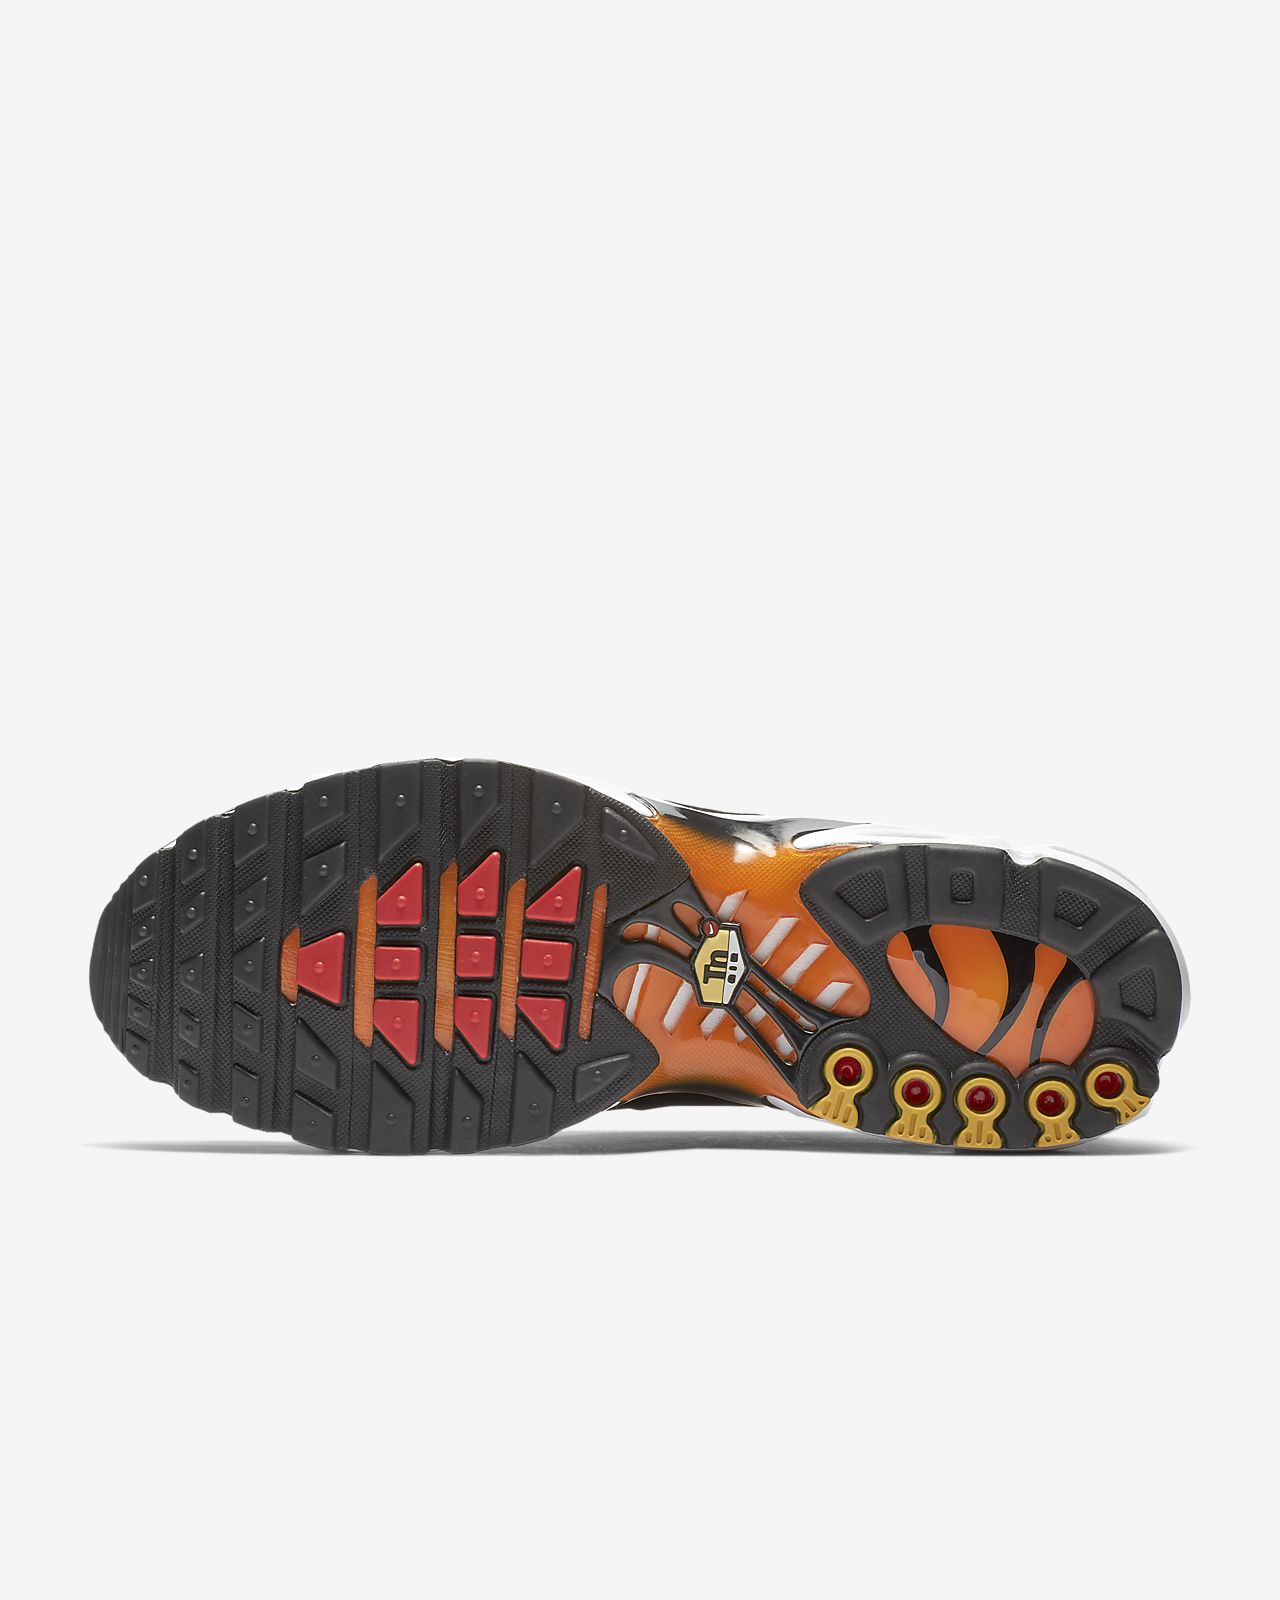 new style 5bcf5 9d911 ... Nike Air Max Plus OG Schuh